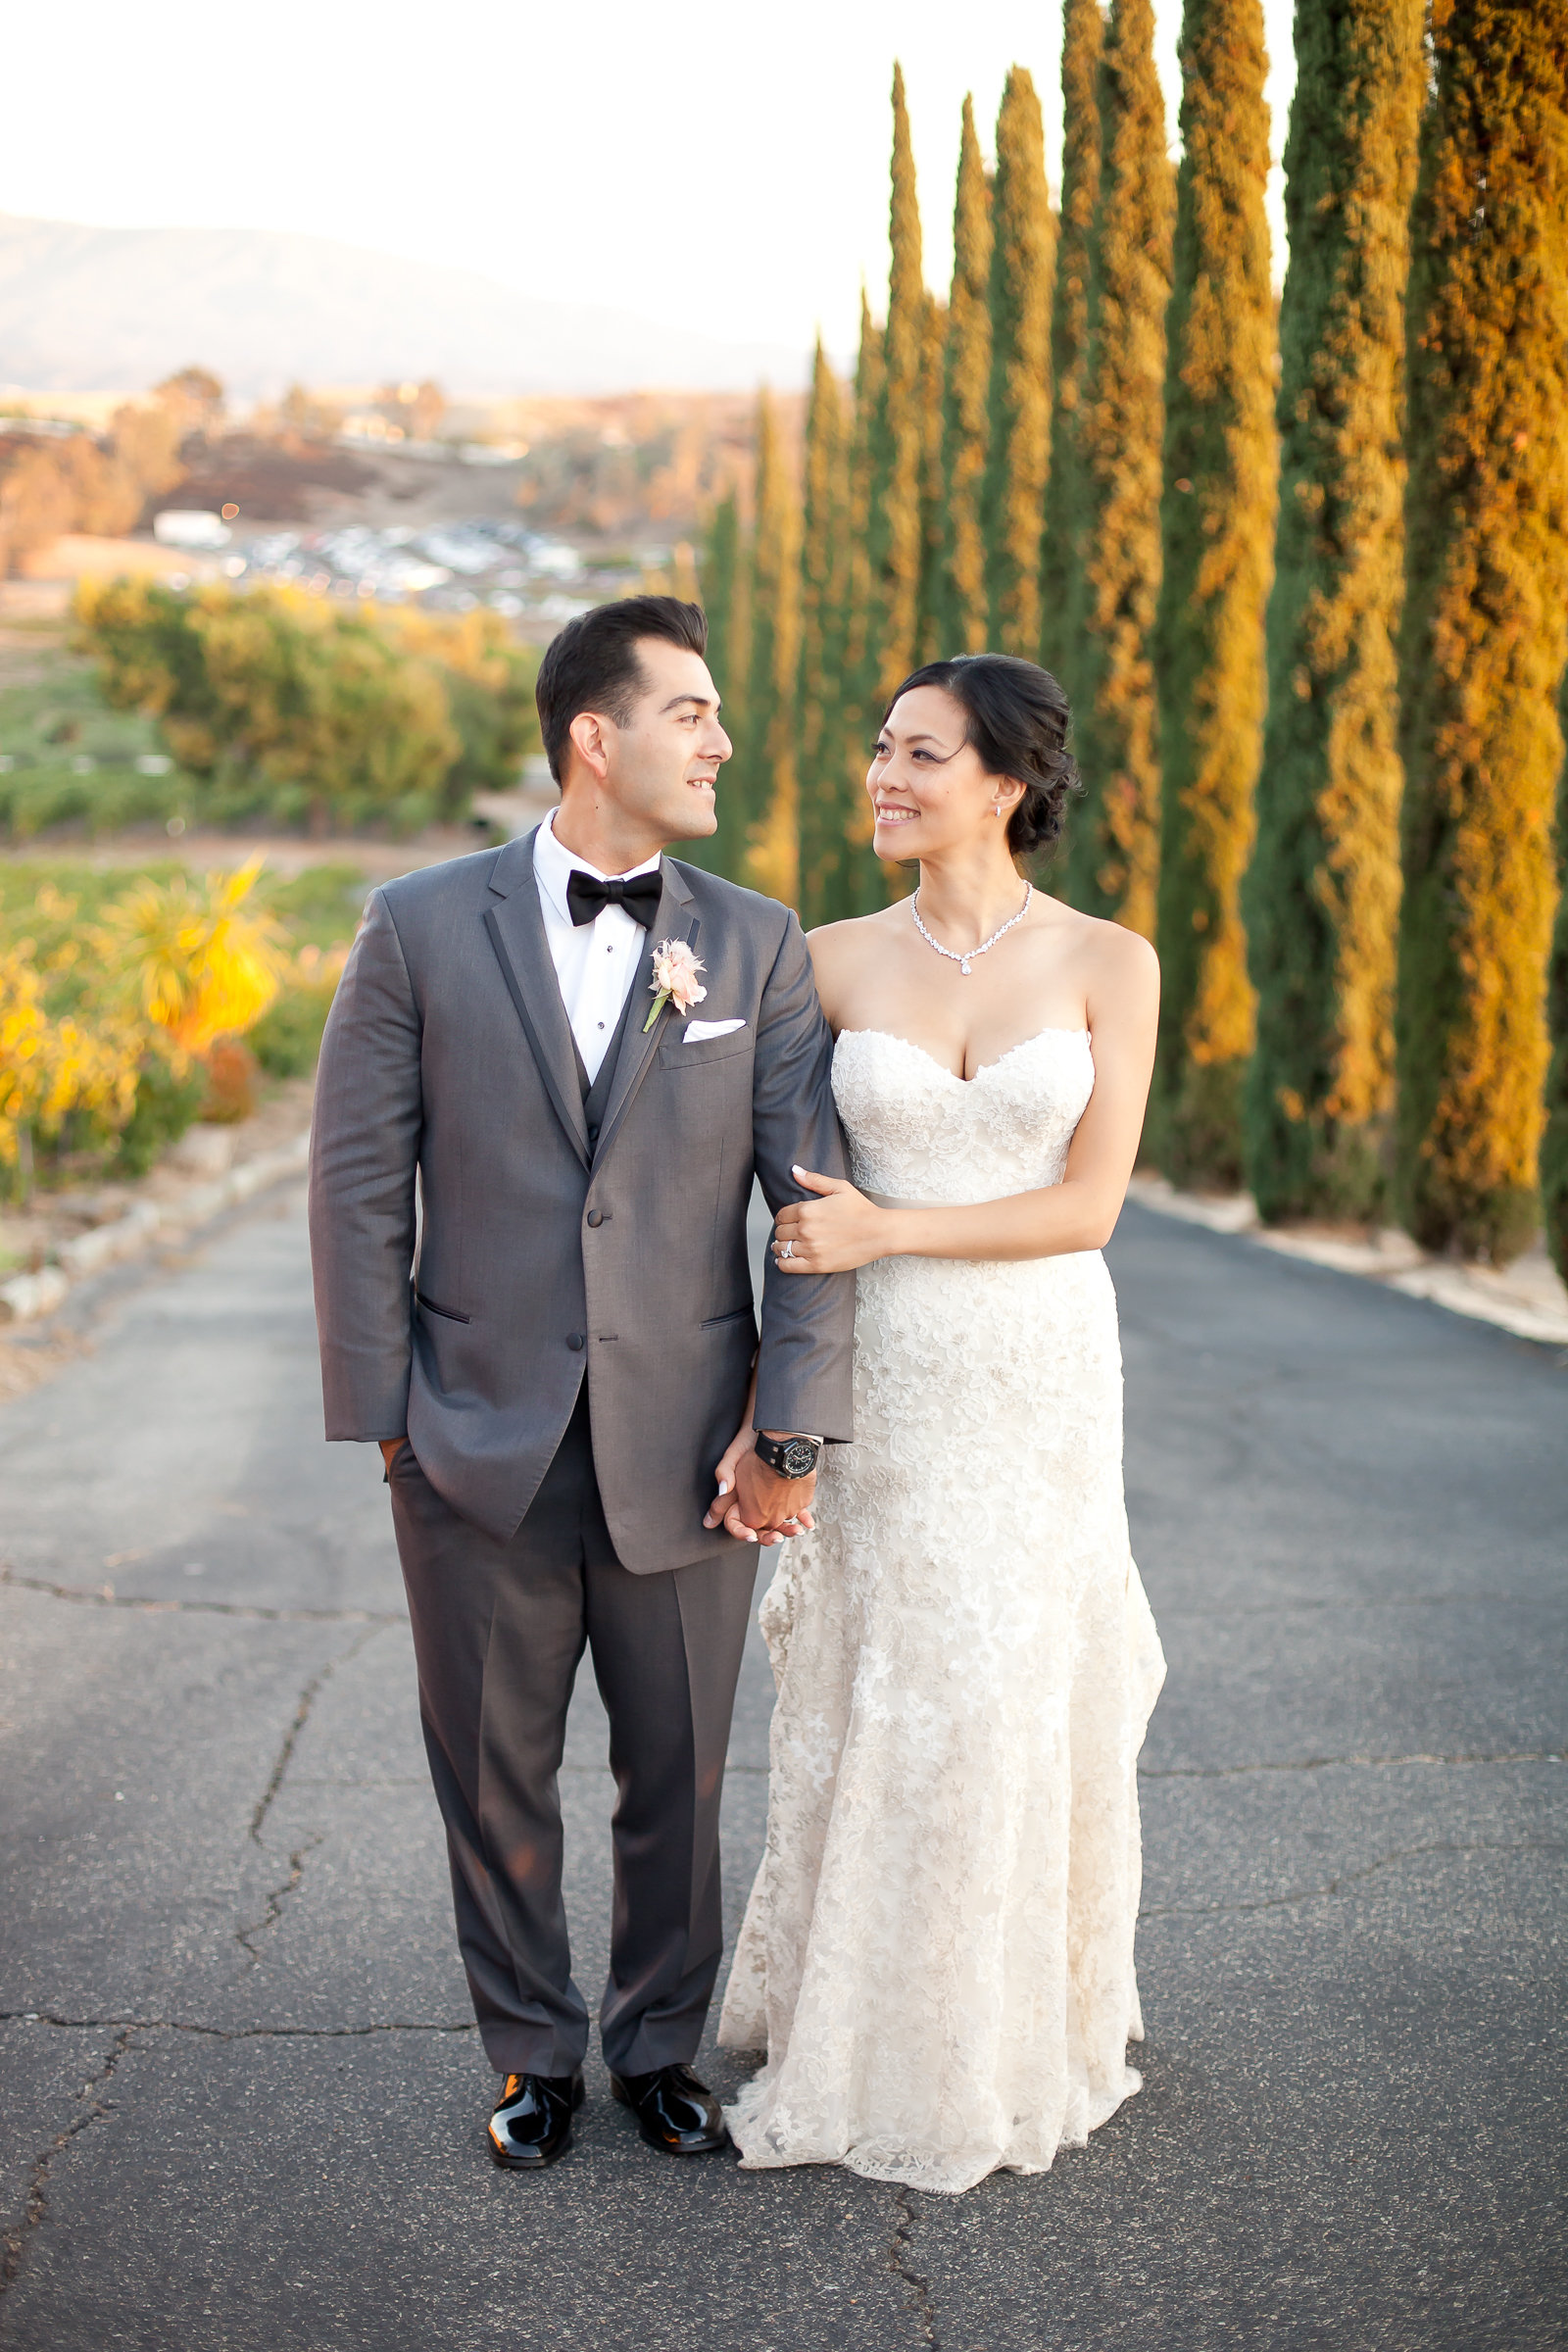 Classically Styled Bride and Groom | Michelle Garibay Events